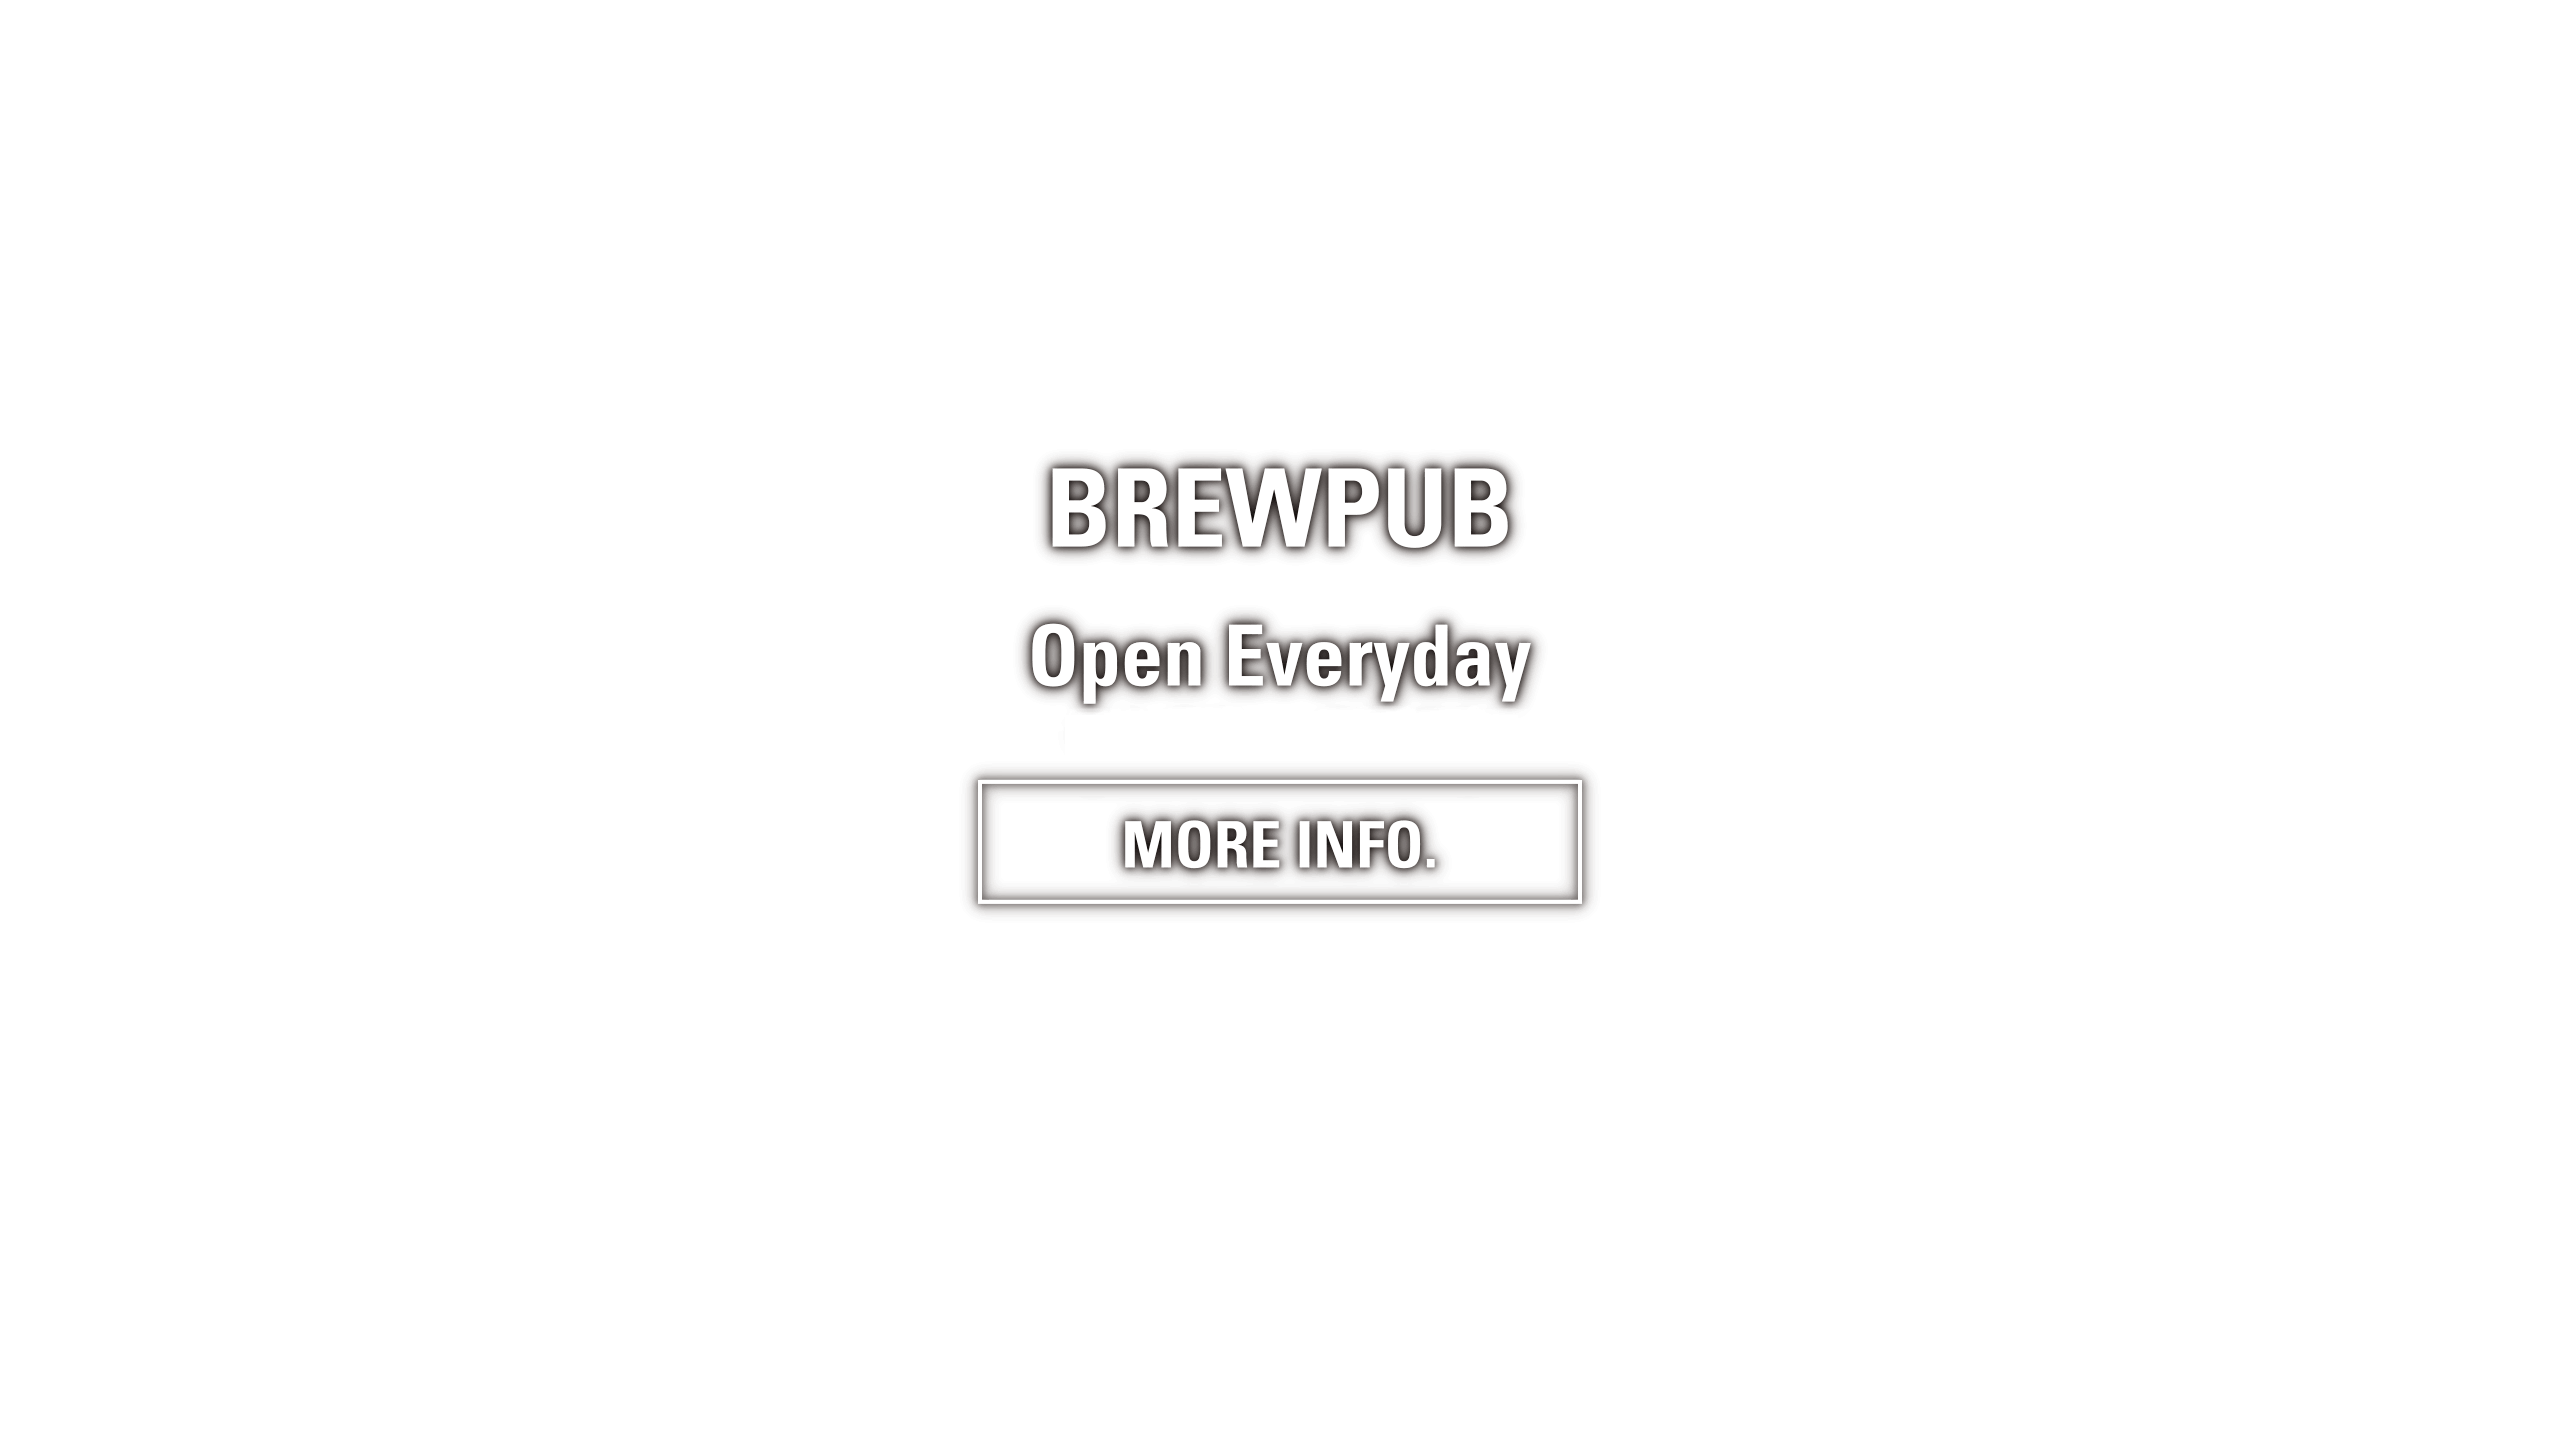 BEER PUB OPEN EVERYDAY